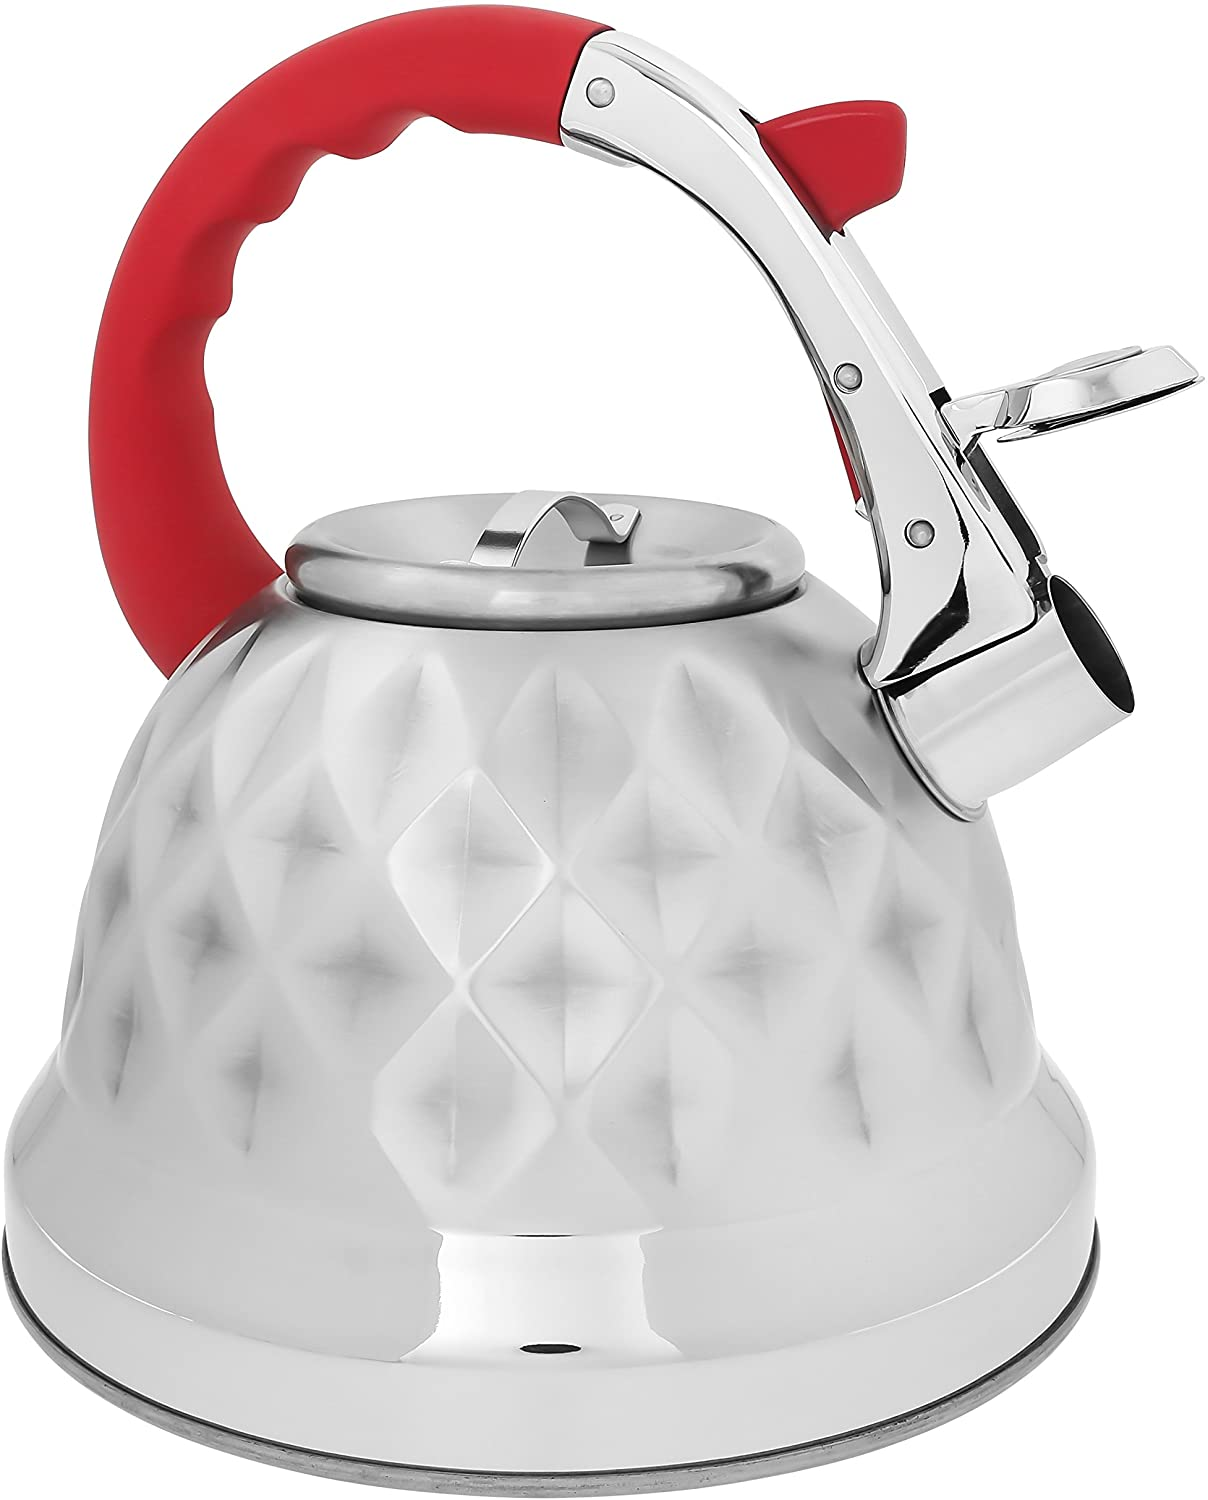 With a tea kettle for gas stove, you don't have to worry about your safety anytime you're preparing a cup of tea. Place the kettle on the gas and make your best beverage in a short period.